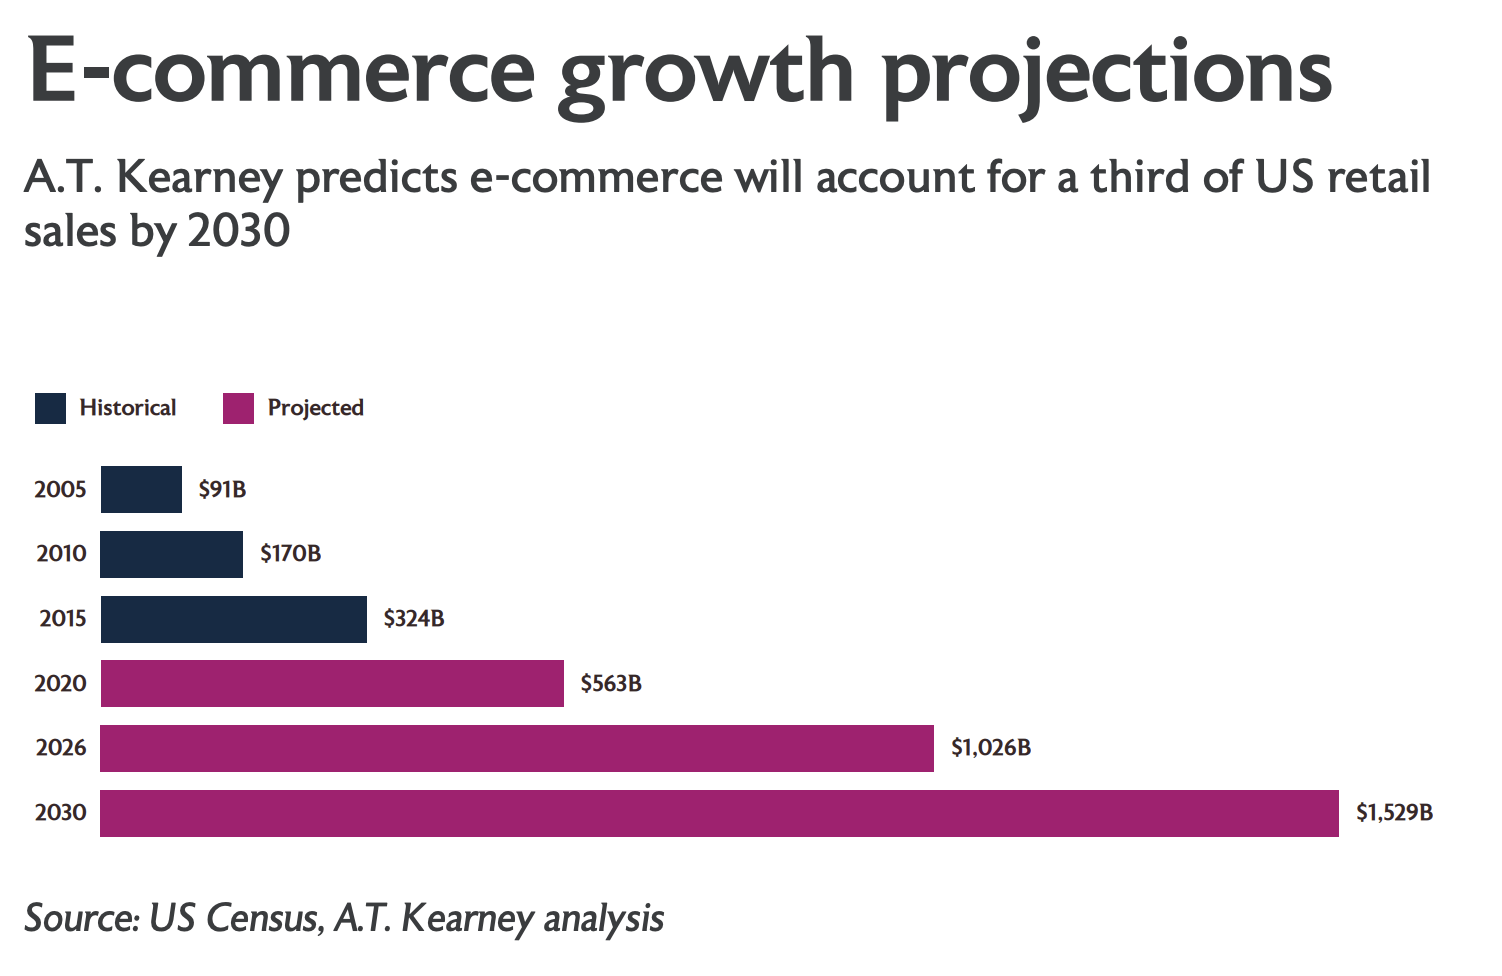 E-commerce growth projections